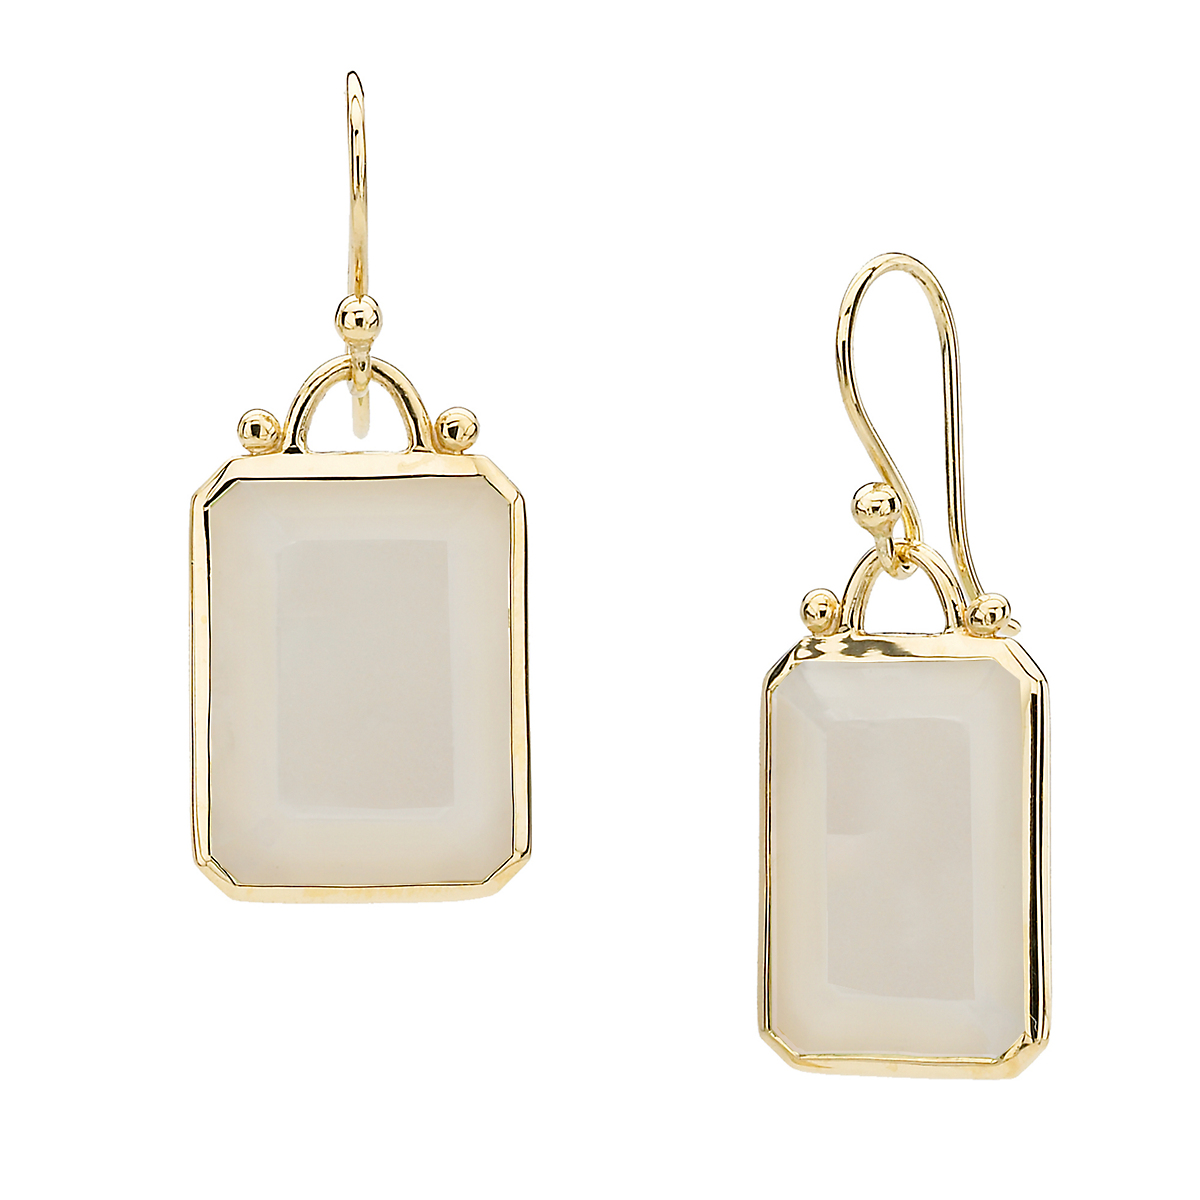 Elizabeth Showers Moonstone Deco Earrings